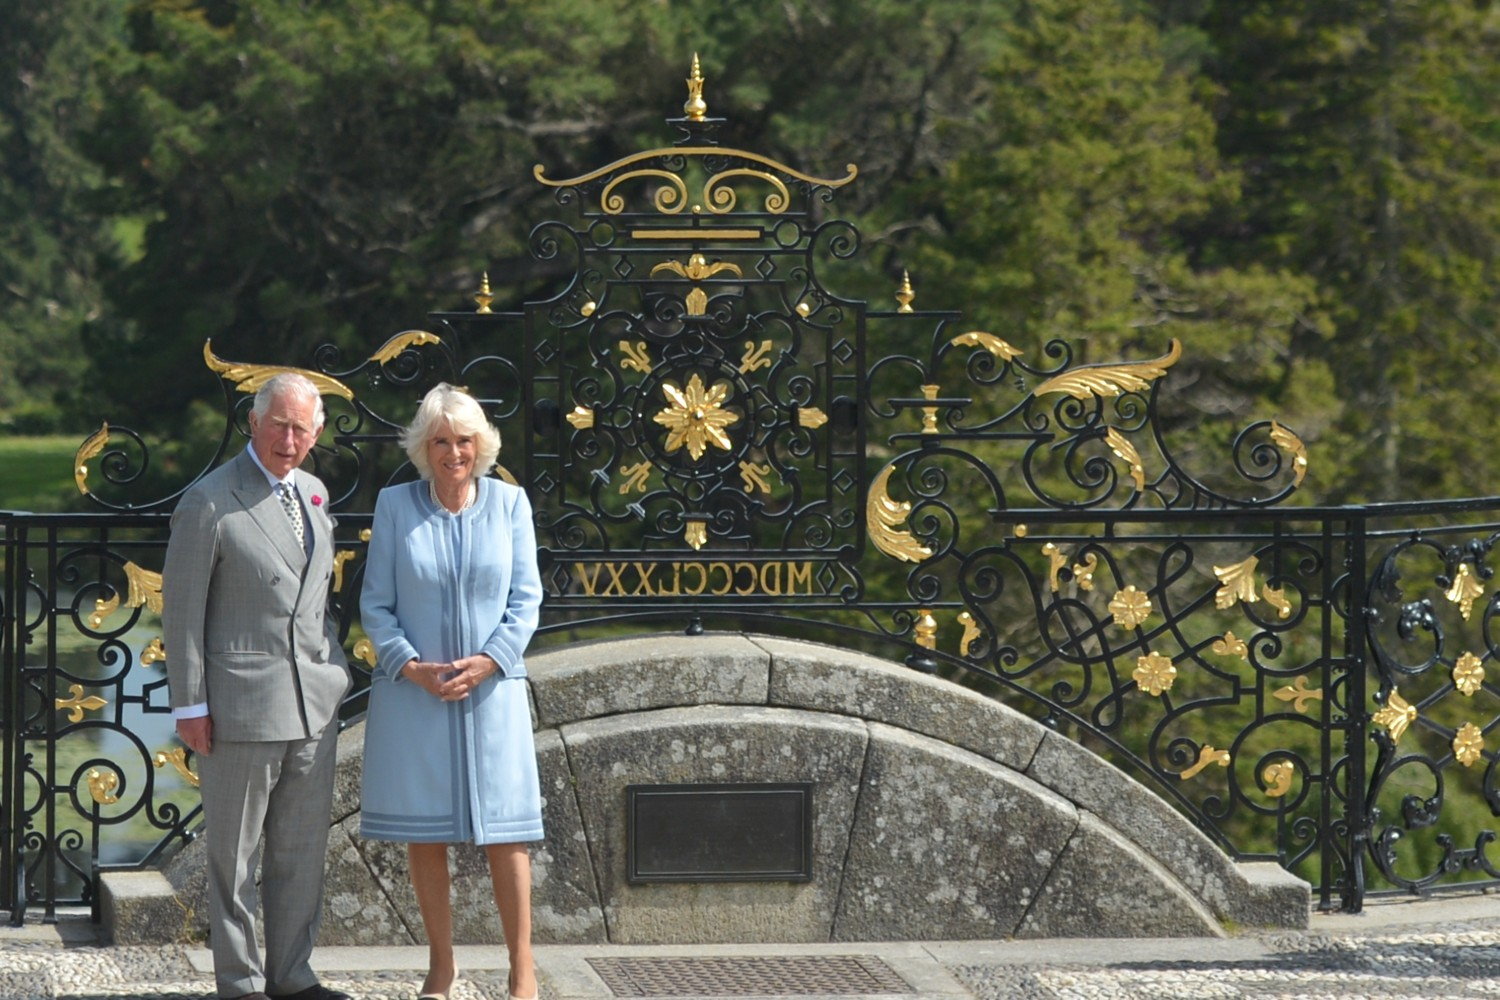 The Prince of Wales is in the throes of a love affair with this country